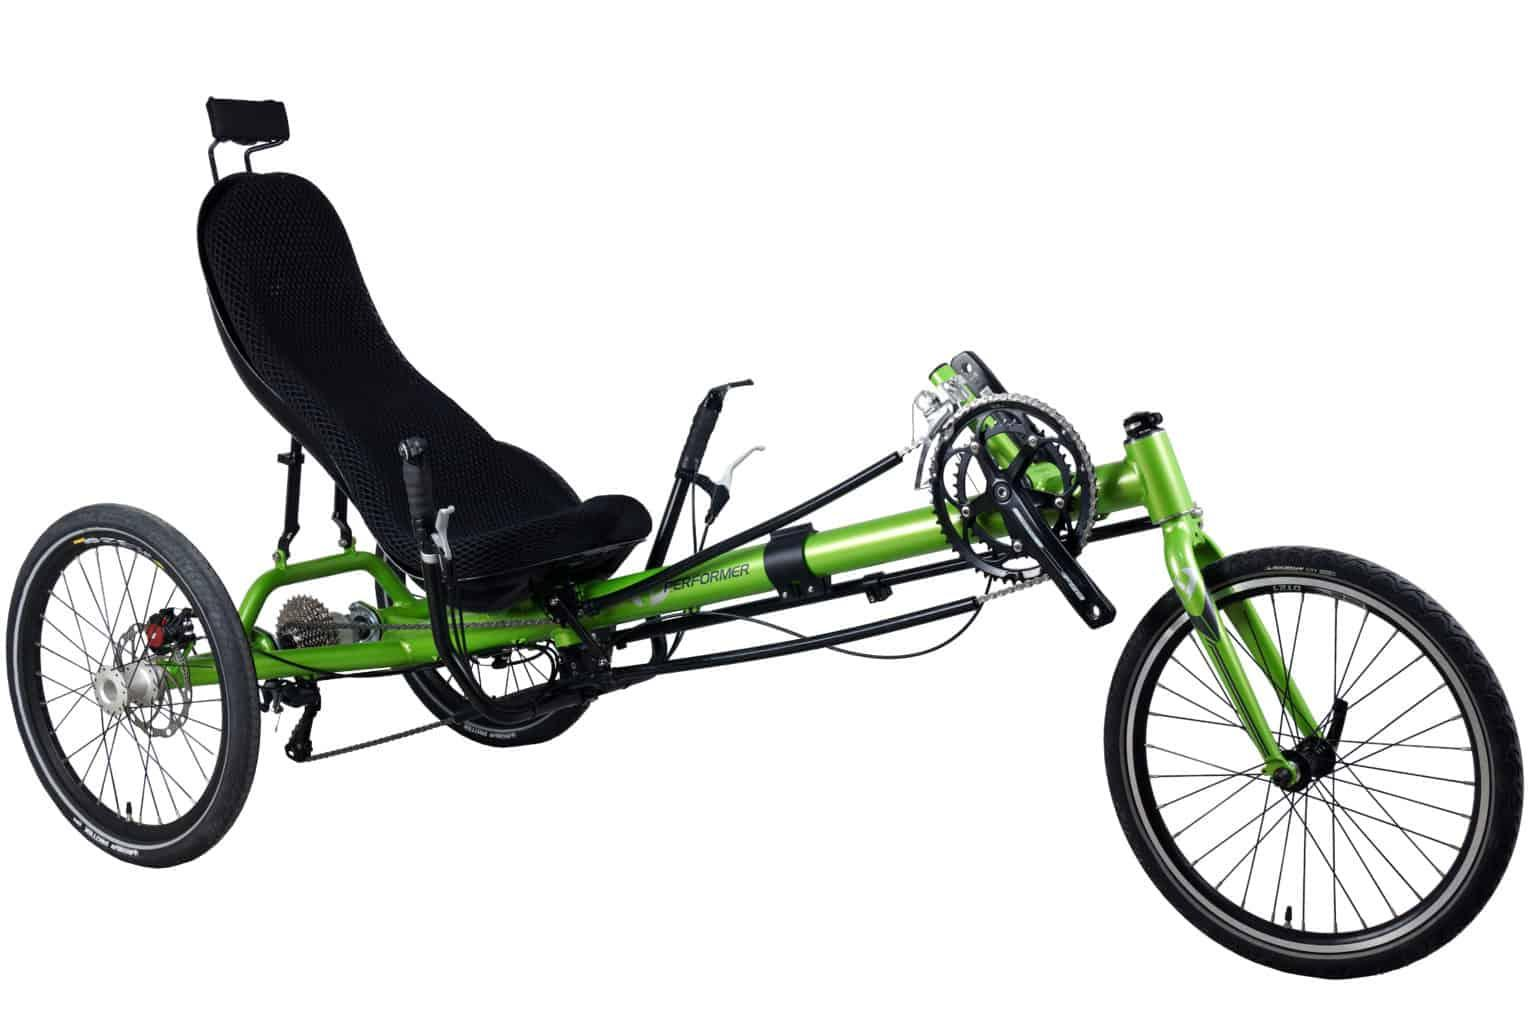 Performer recumbent Trike Futuro tricycle couché